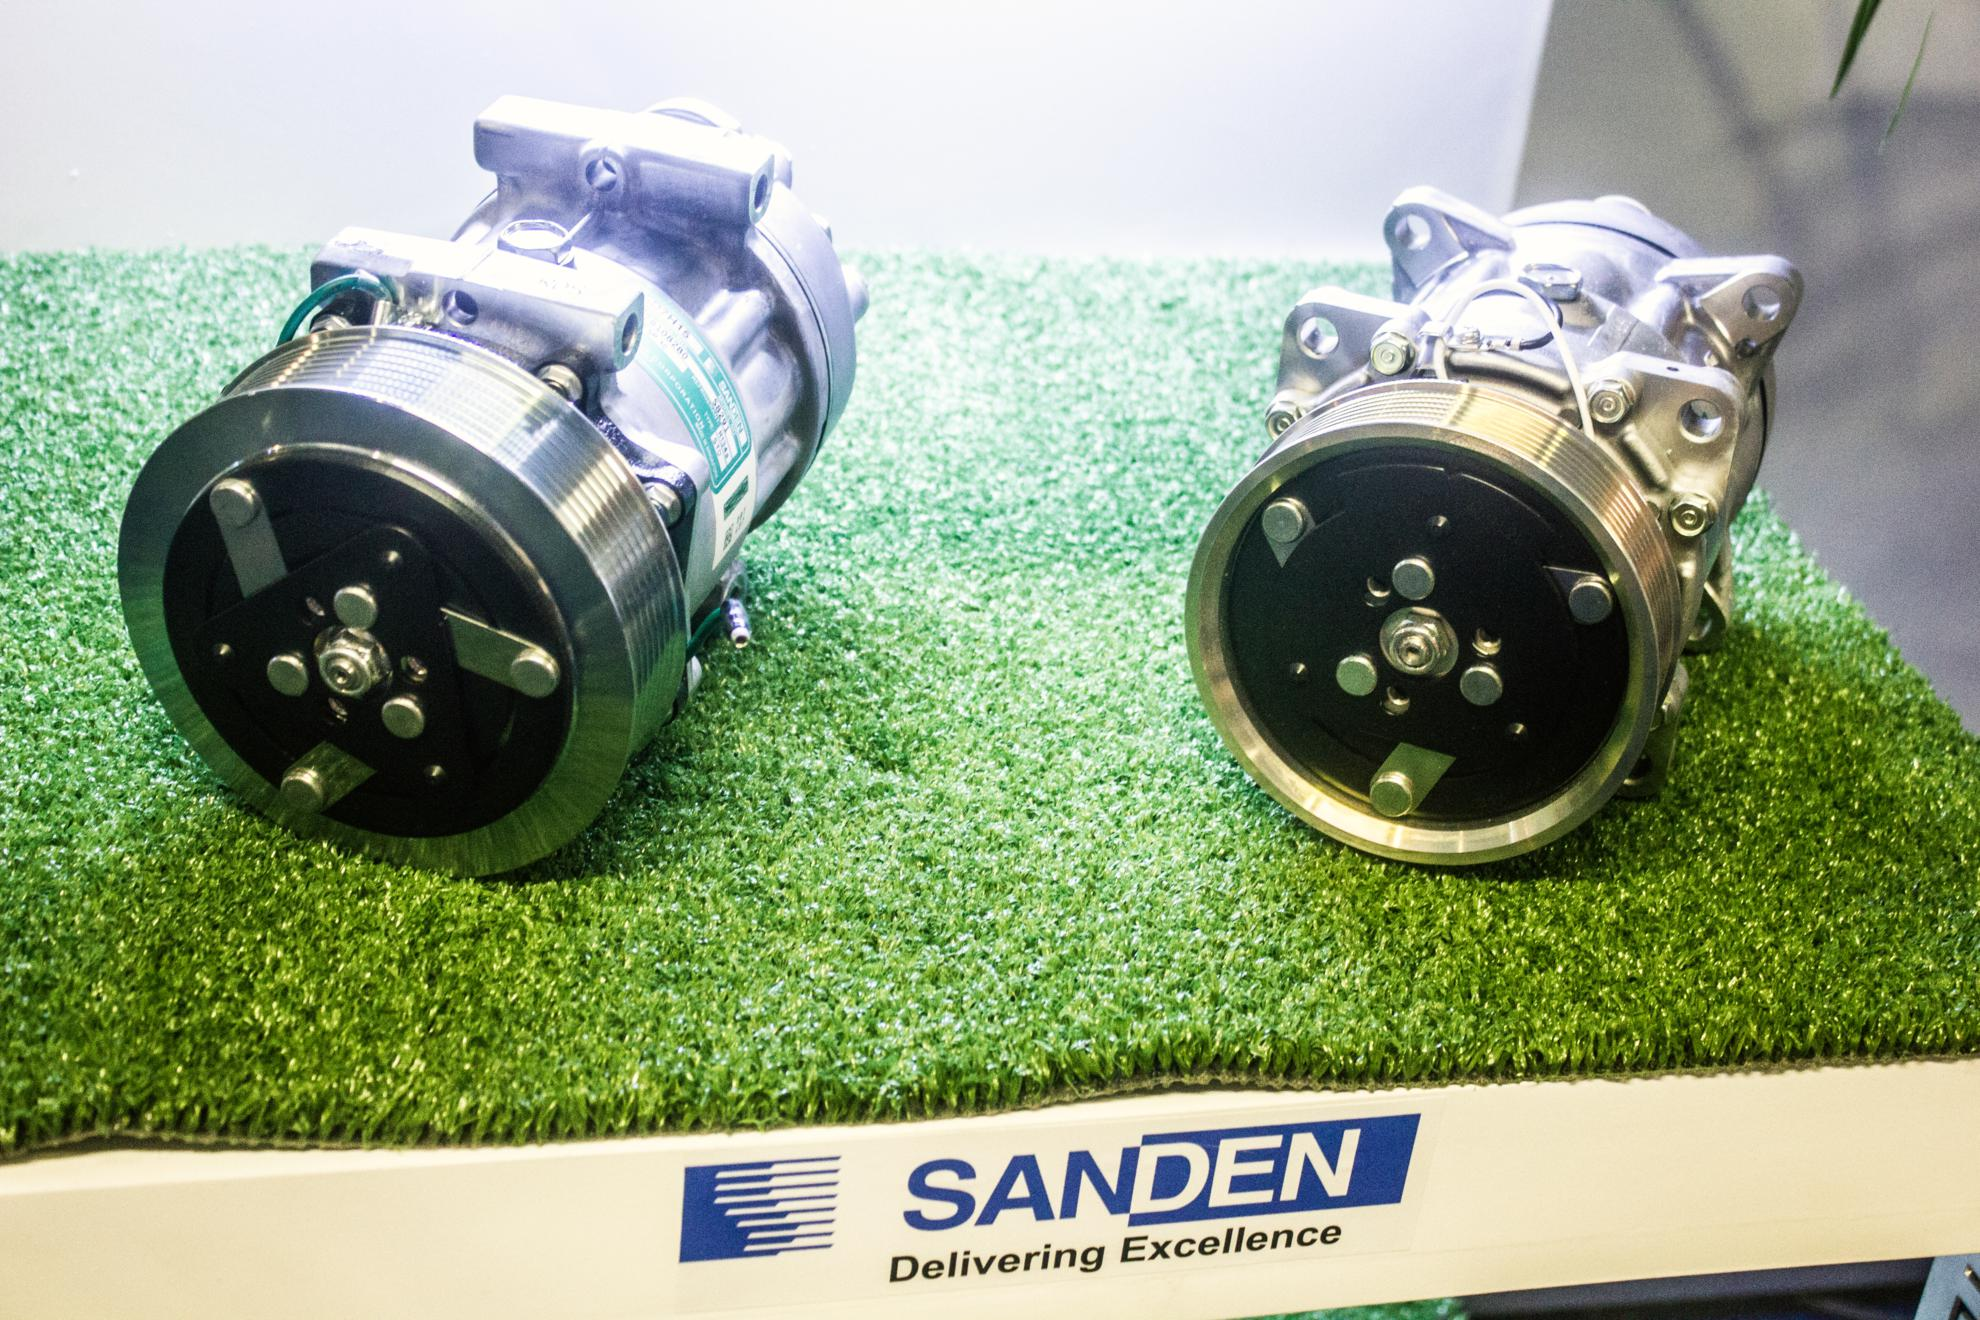 Sanden-Delivering-Excellence